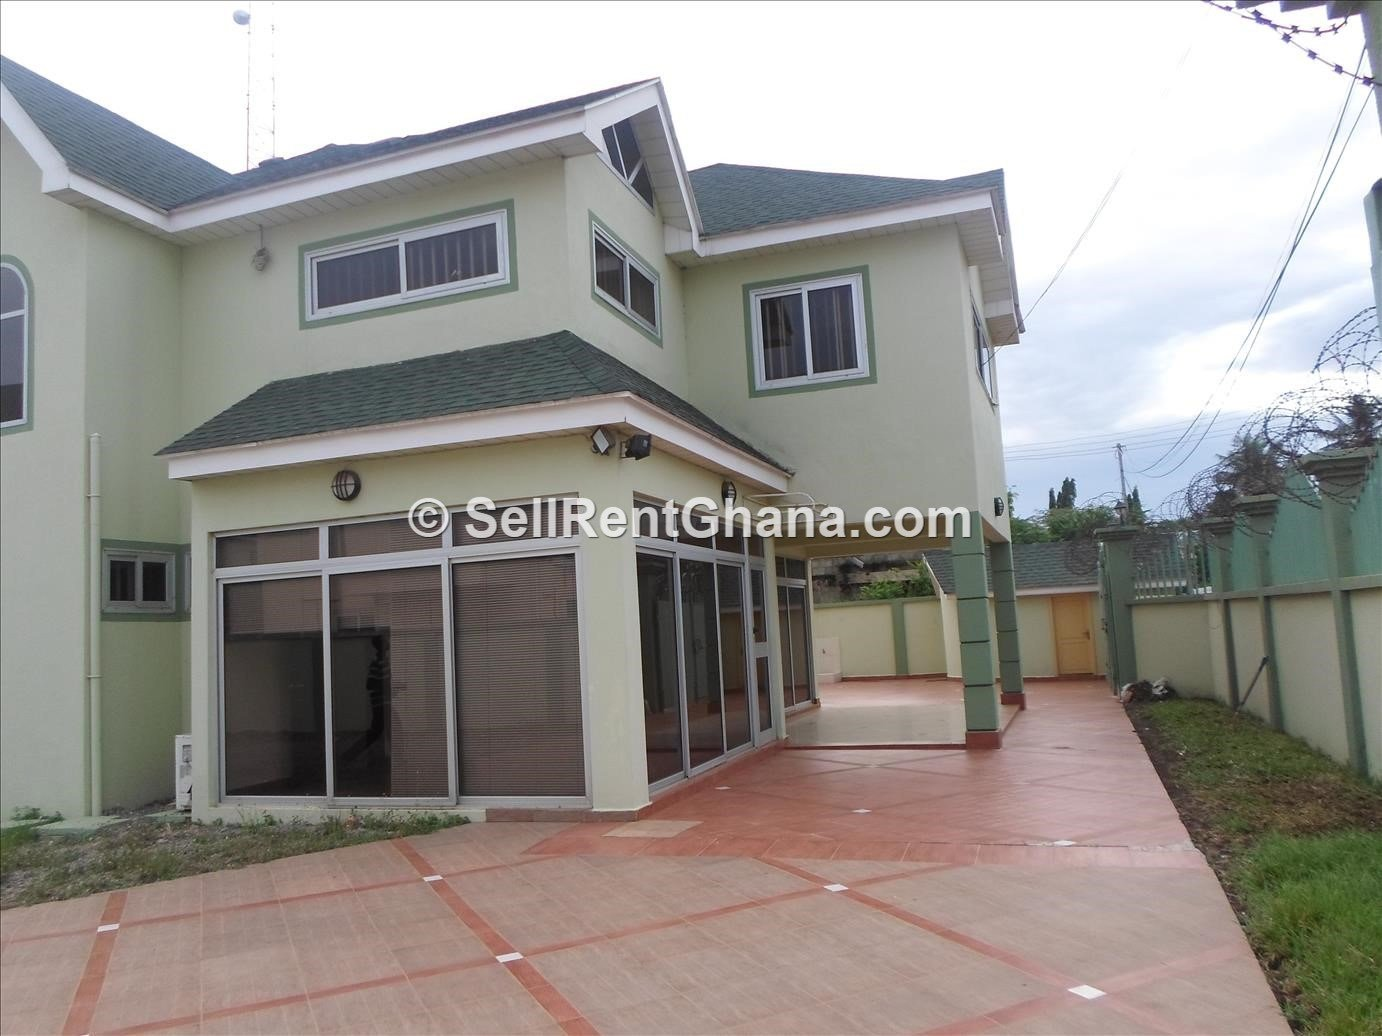 Best 4 Bedroom House To Let Airport Sellrent Ghana With Pictures